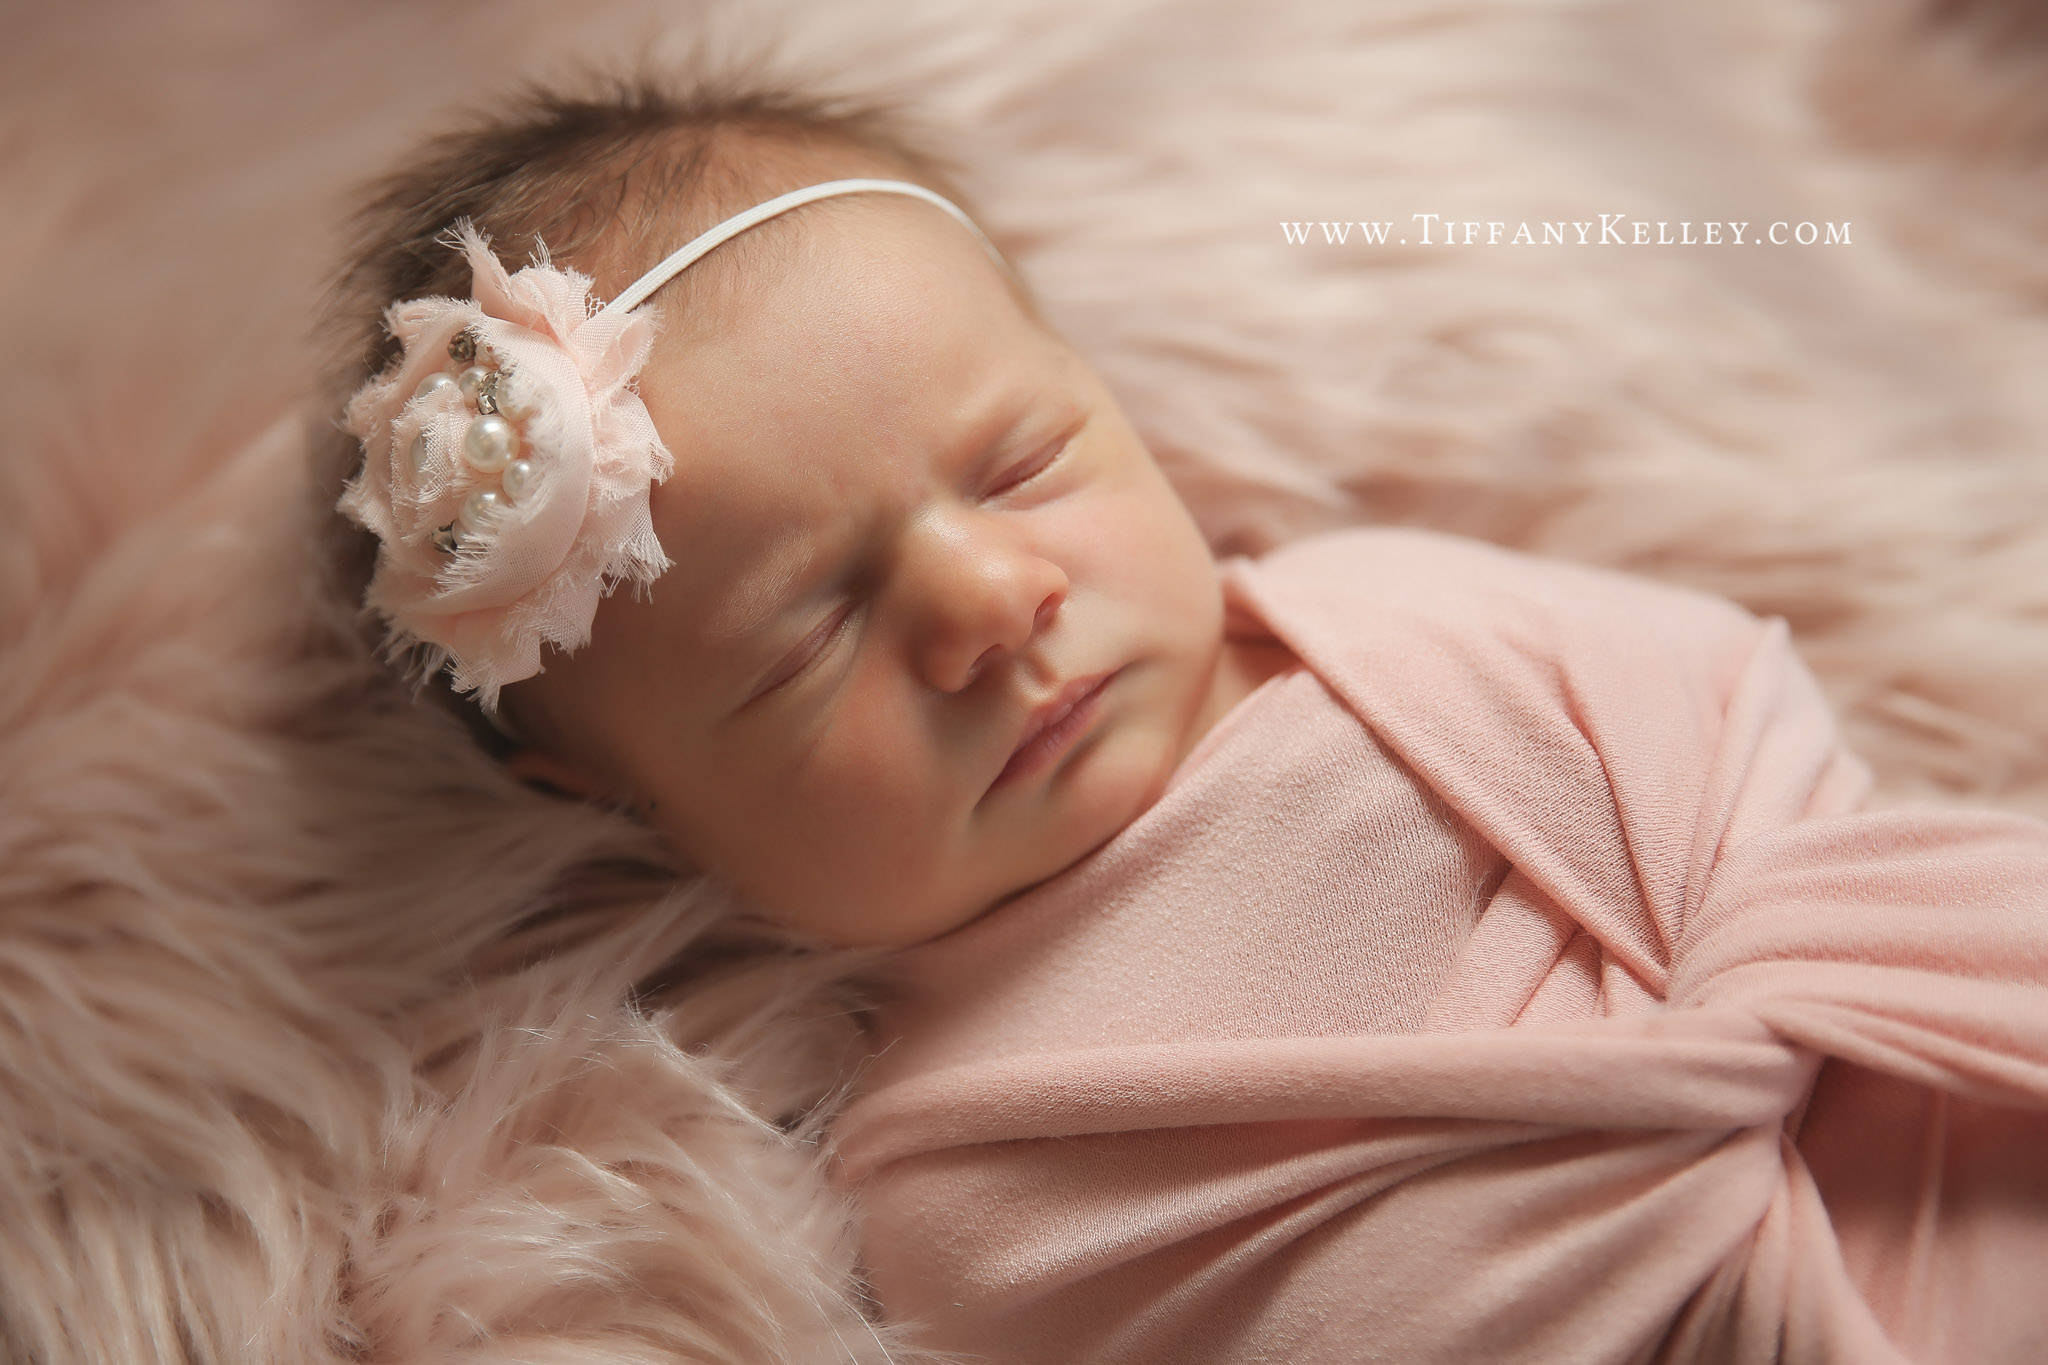 Aubrey Branson Springfield Missouri Newborn Photographer Tiffany Kelley Photography